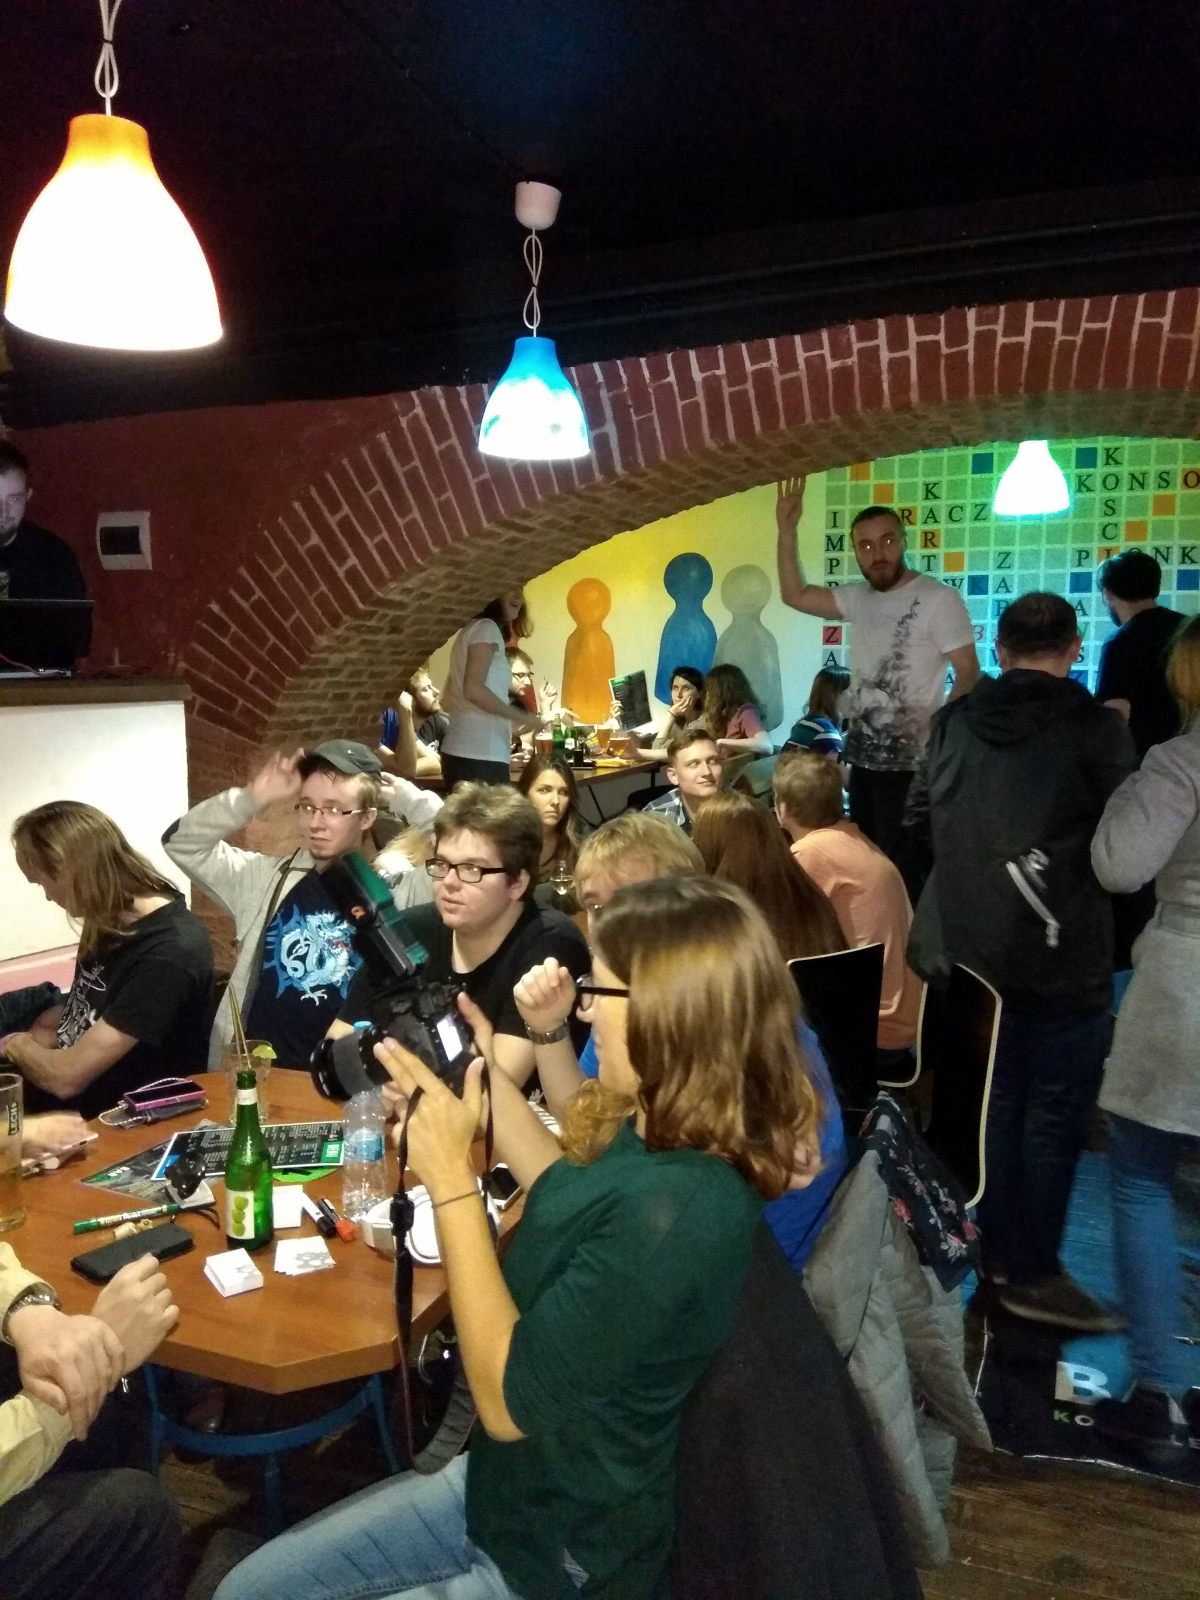 Multiple people sitting and standing in a bar.